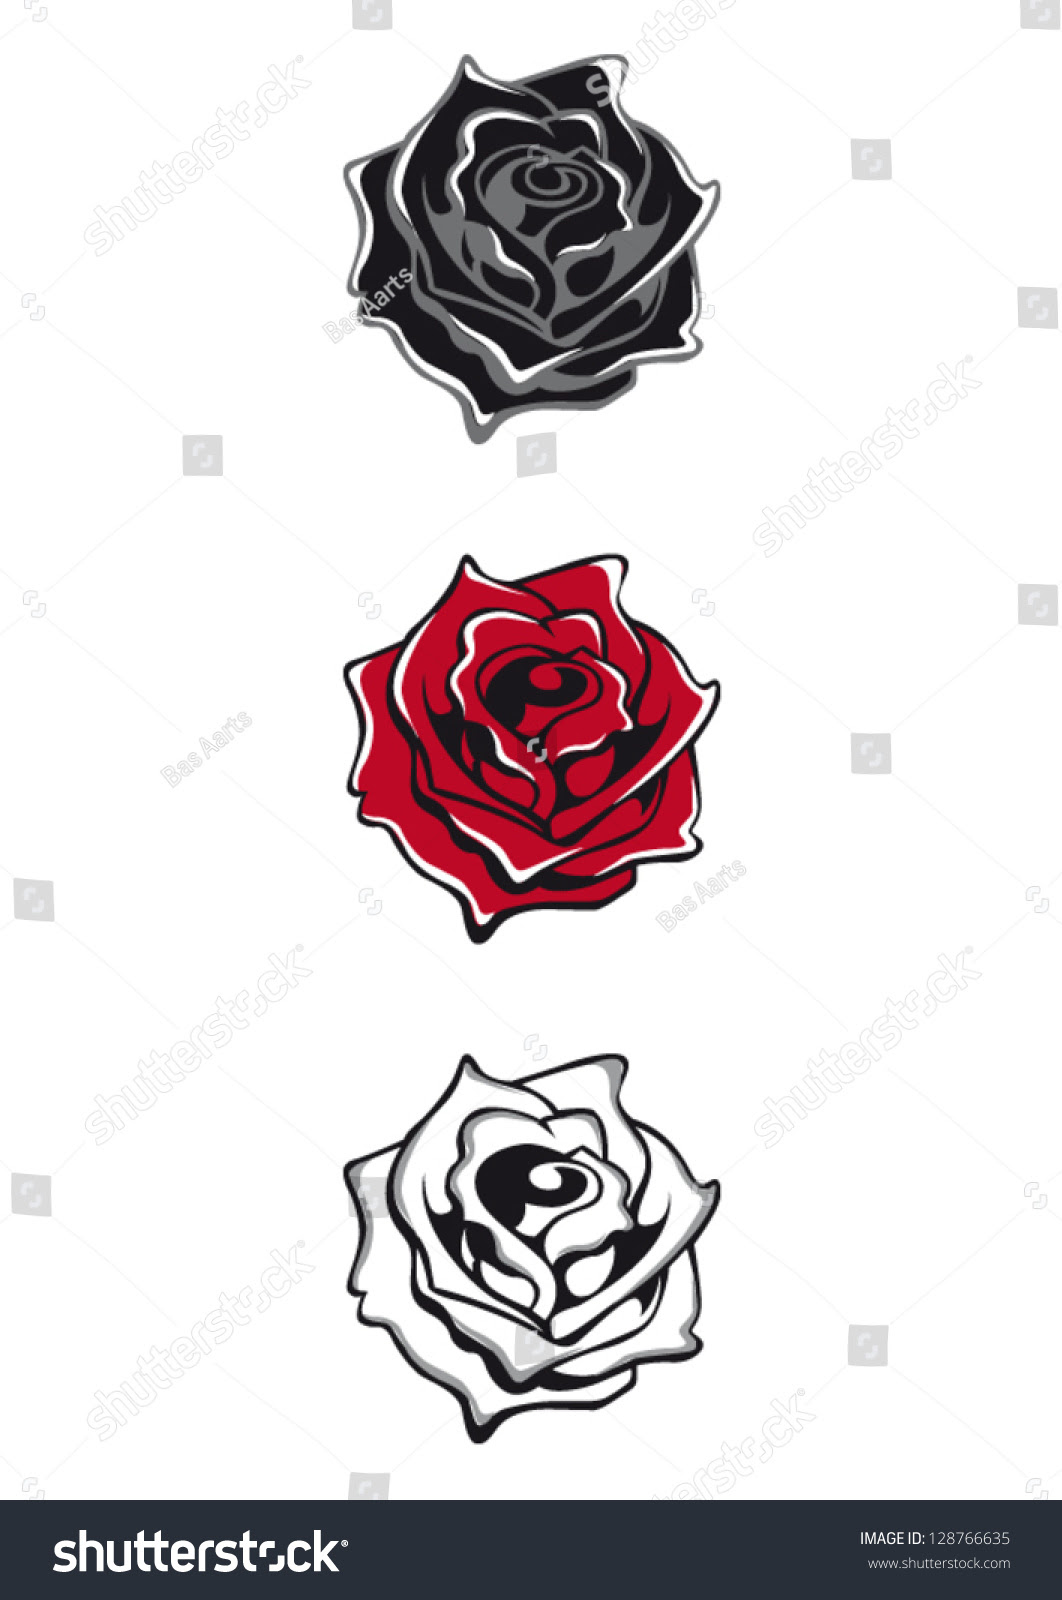 Dongetrabi Black And White Red Rose Tattoo Images